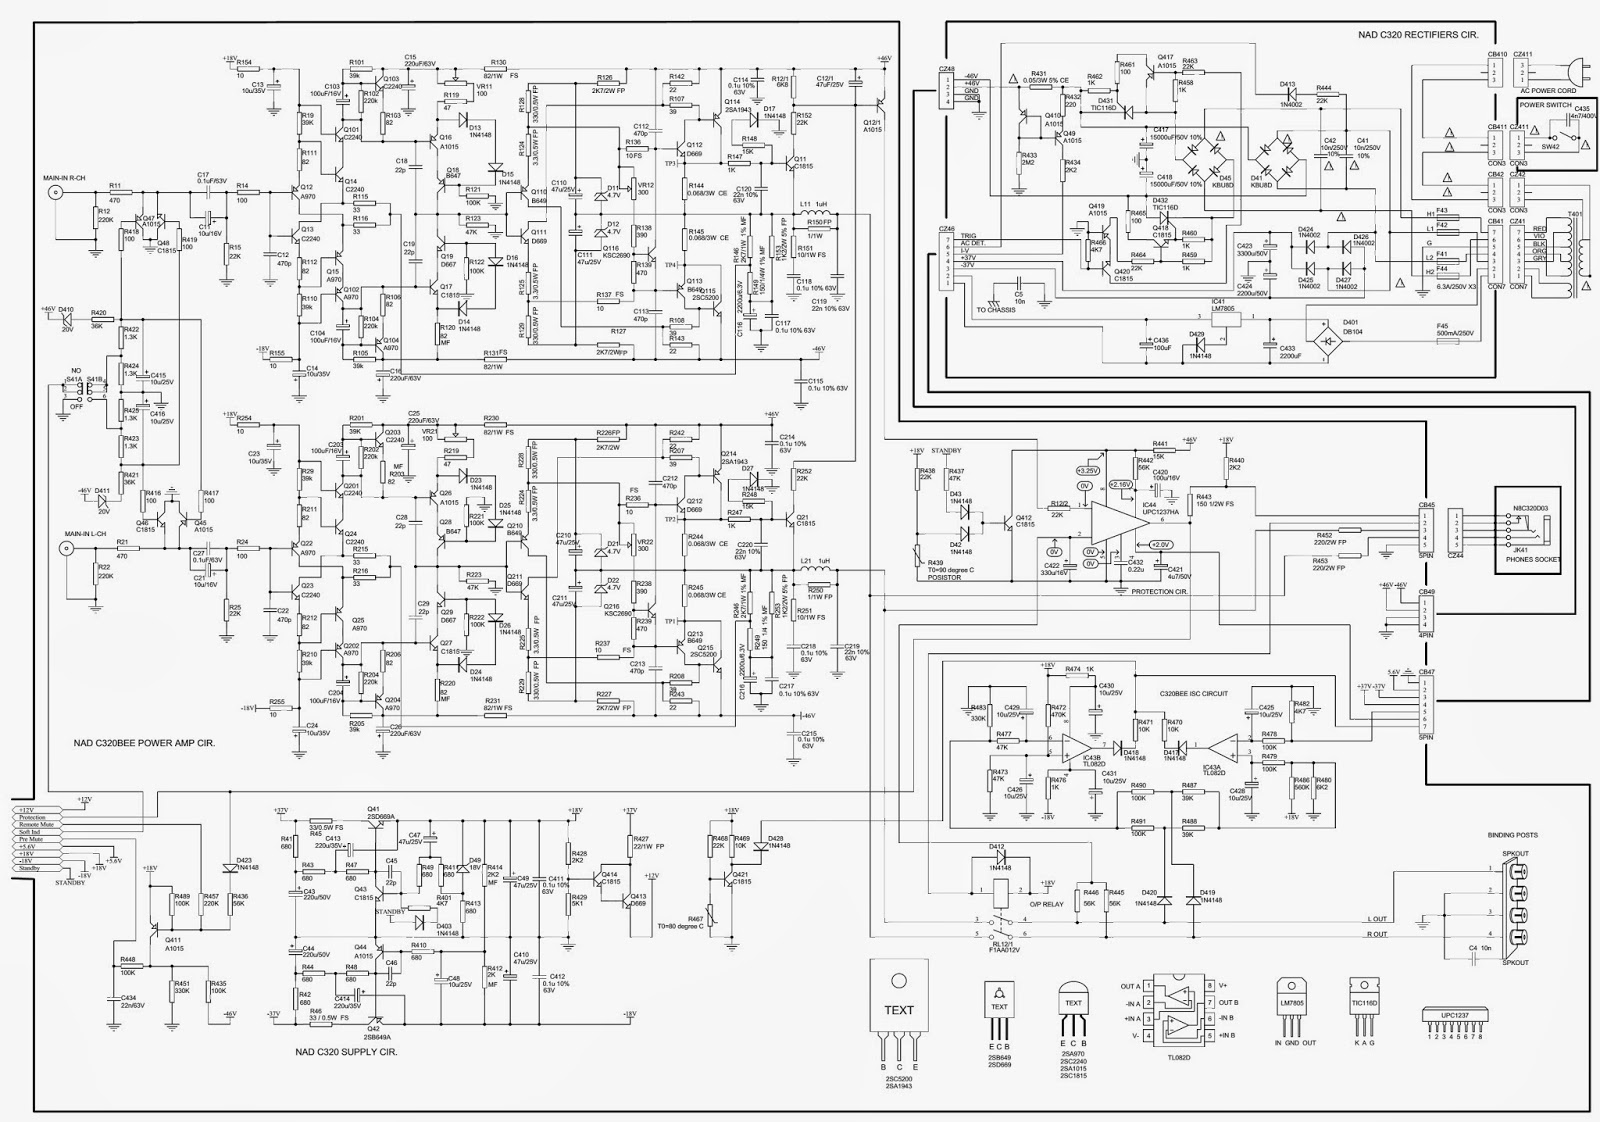 2001 Jeep Wrangler Stereo Wiring Diagram Circuit Diagrams Image